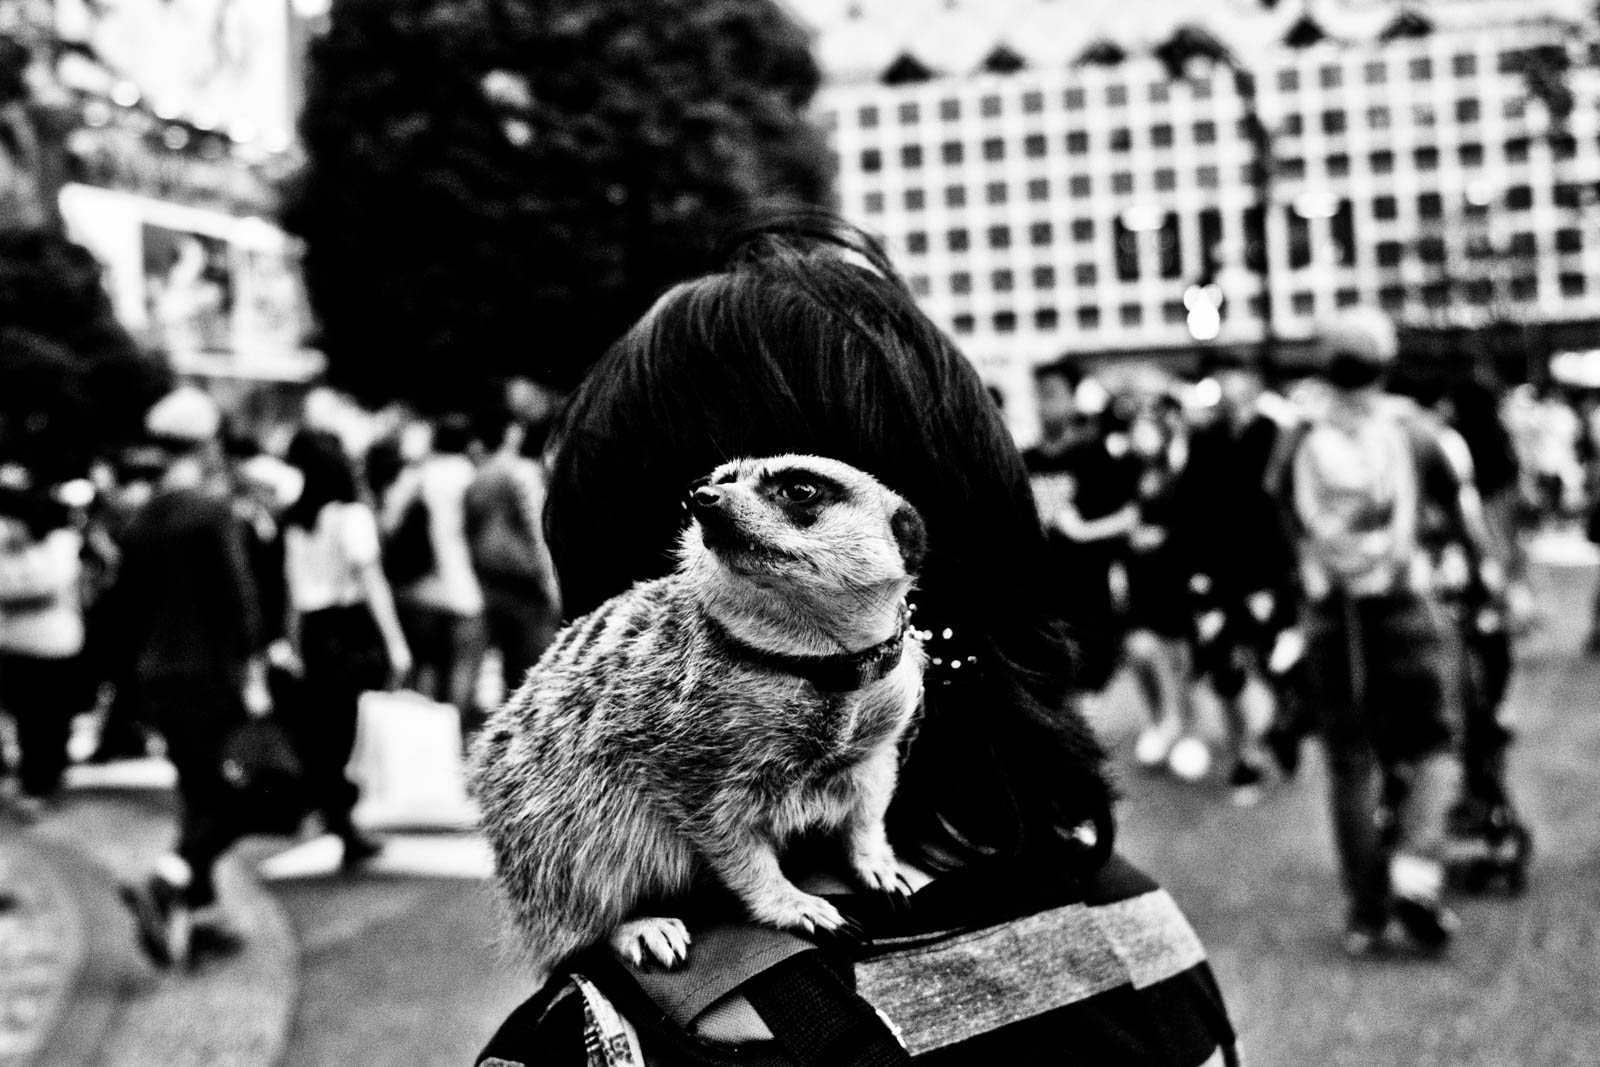 Meercat on a shoulder of Japanese man on Shibuya, Tokyo. Street photography by Victor Borst